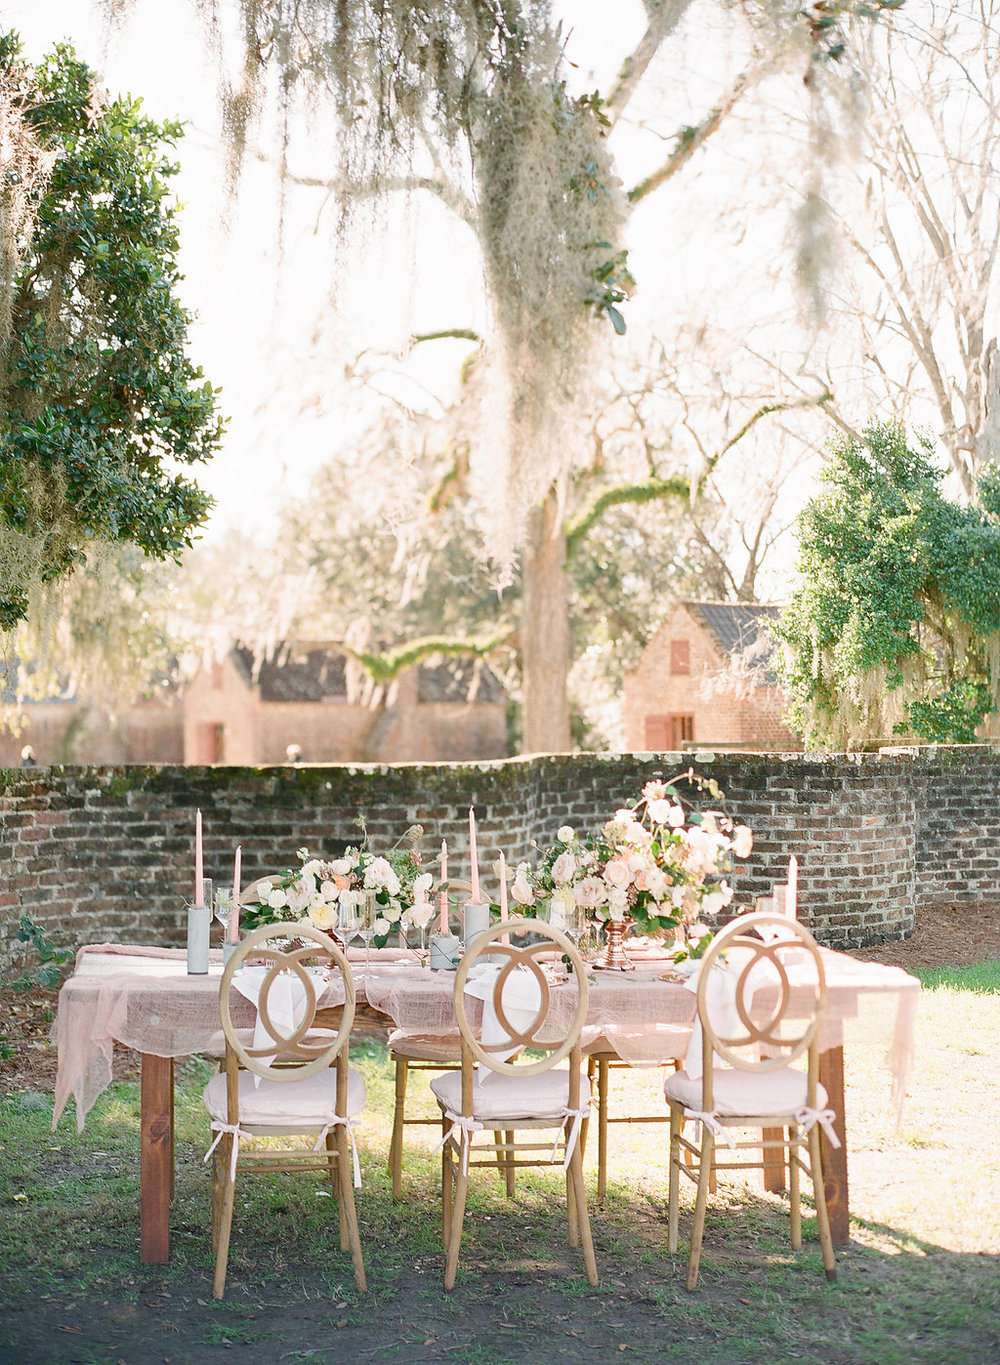 the-happy-bloom-ivory-and-beau-bridal-boutique-trendy-bride-magazine-august-floral-design-savannah-bridal-boutique-lafayette-sarah-seven-boone-hall-plantation-wedding-southern-wedding-charleston-wedding-mt-pleasent-wedding-19.jpg